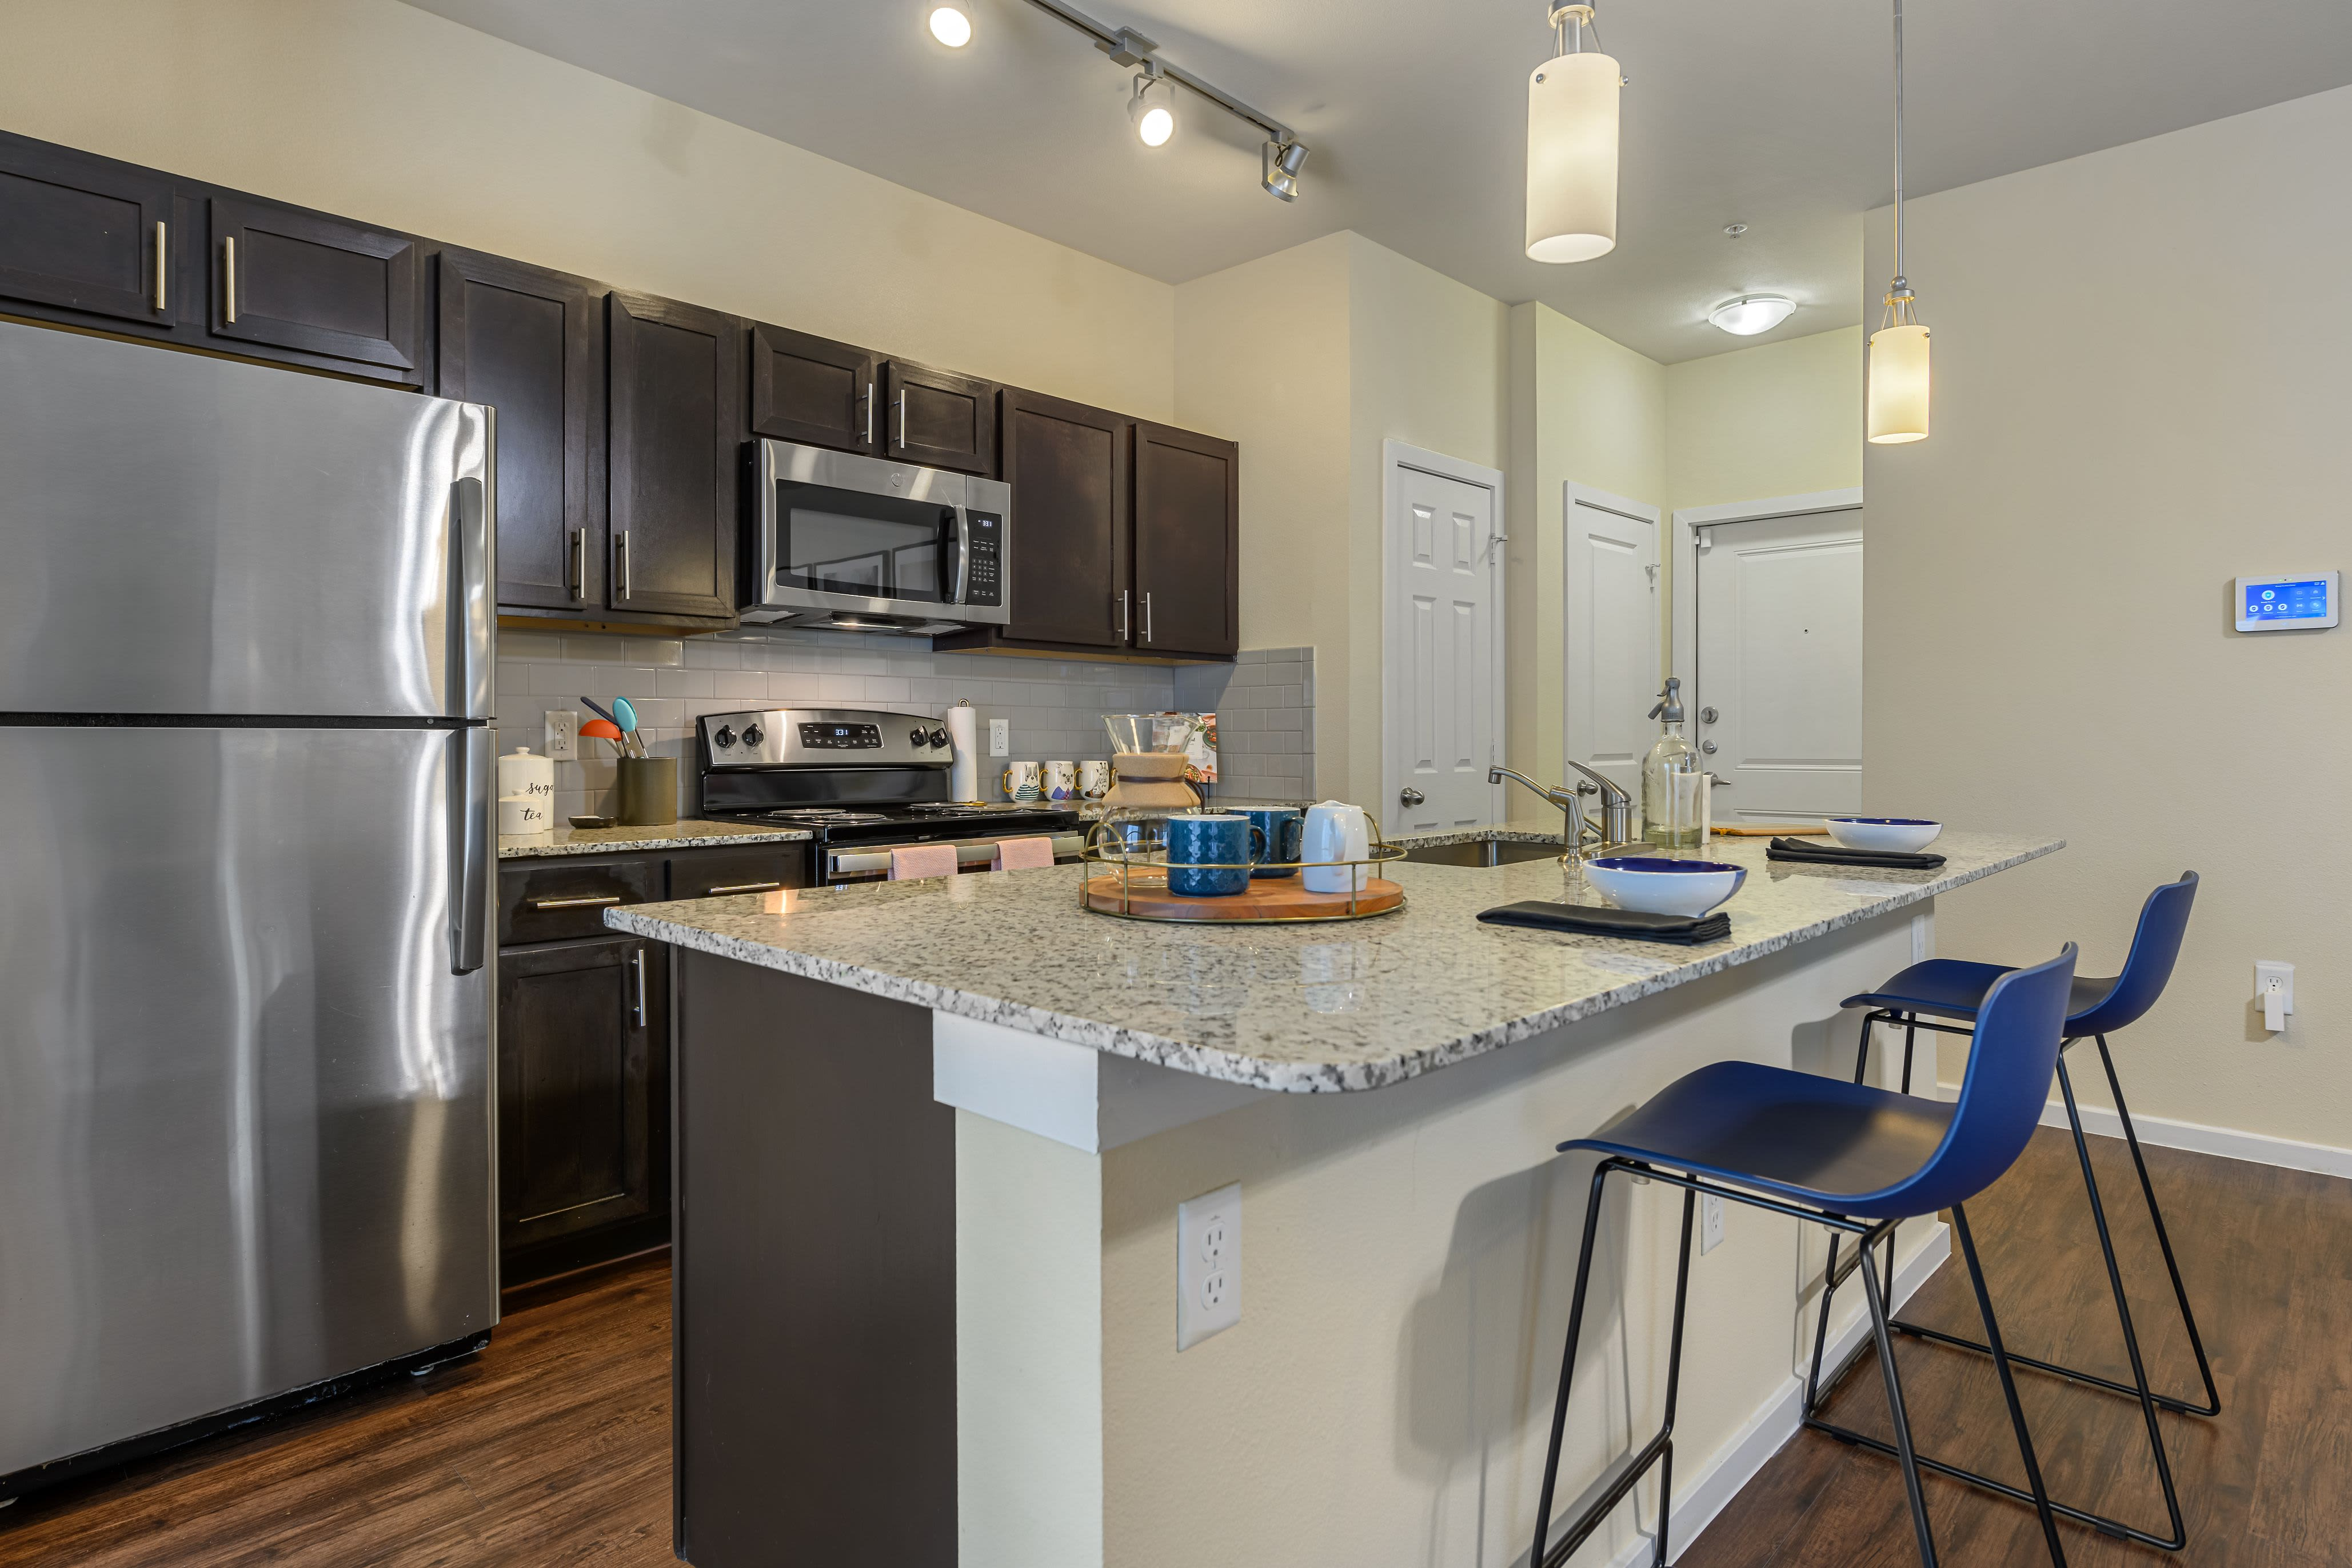 Spacious kitchen with breakfast bar at Marquis SoCo in Austin, Texas